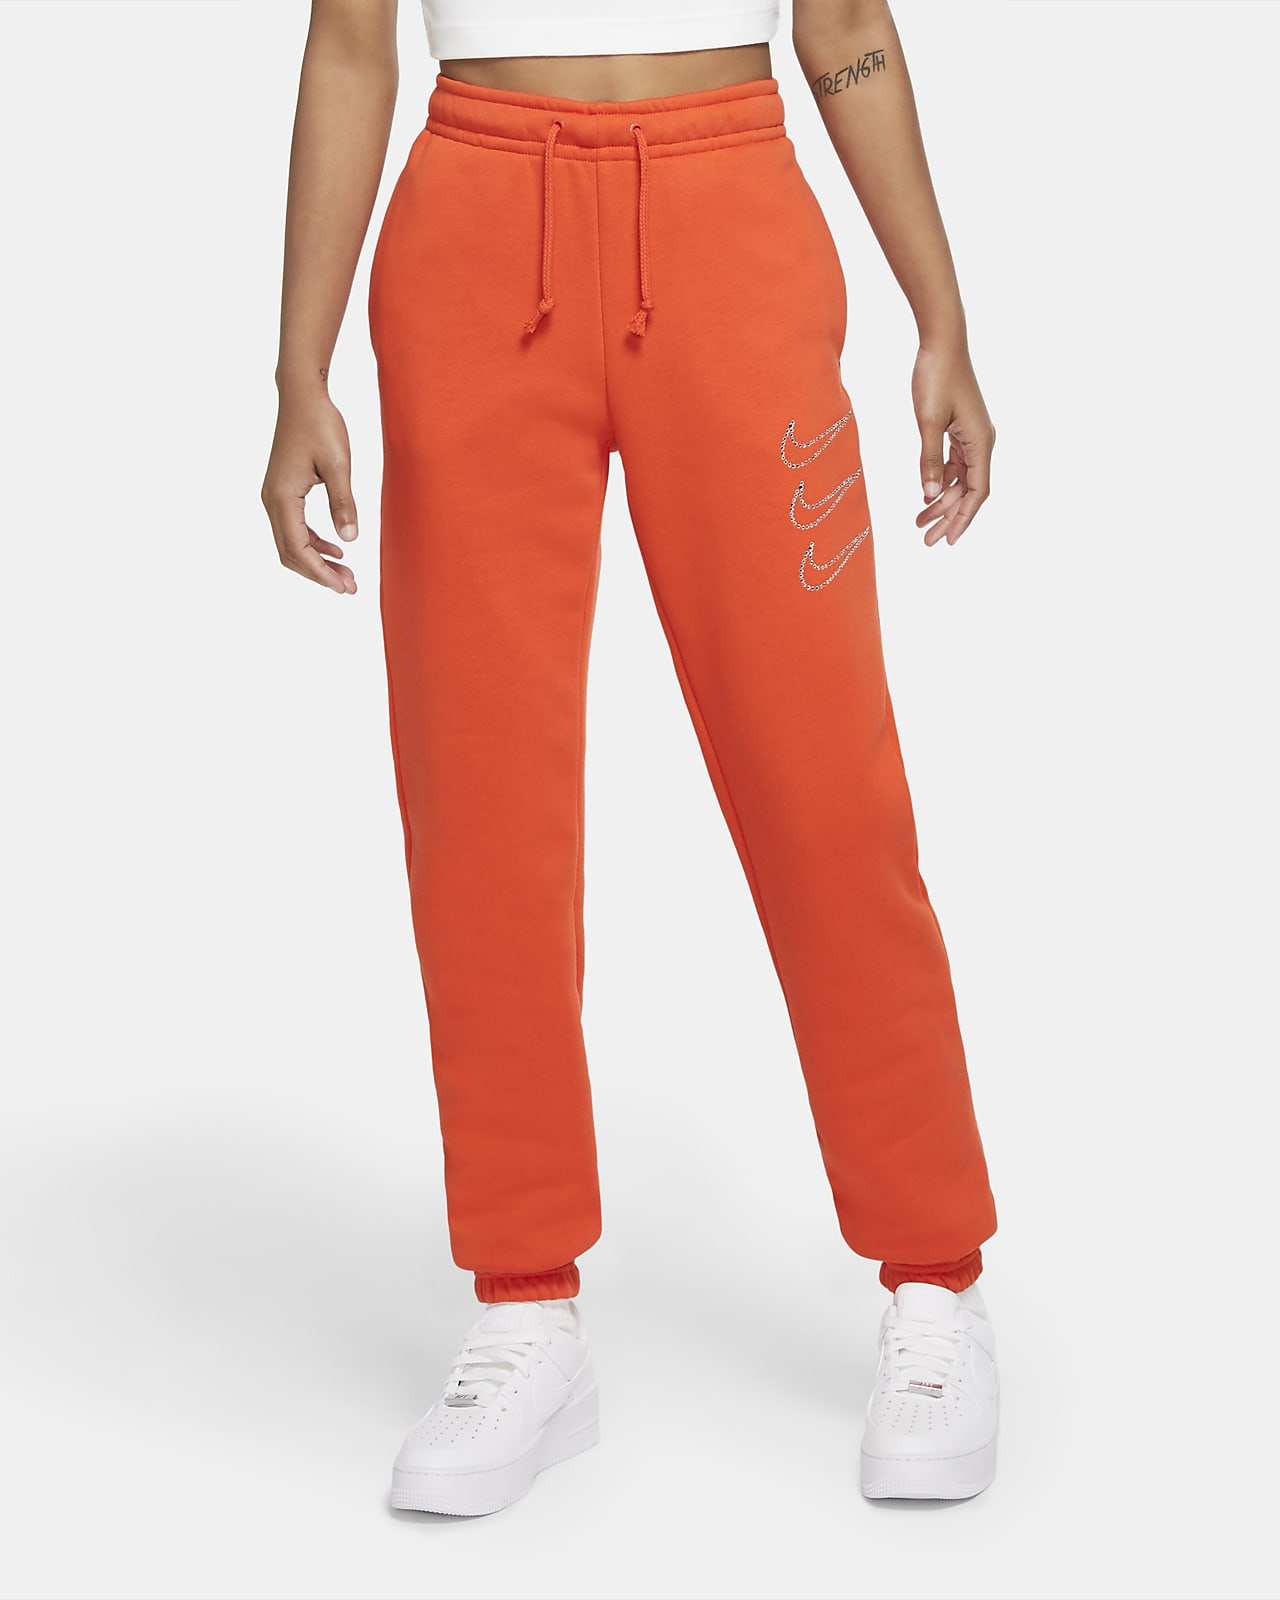 Nike Sportswear Rhinestone Women's Fleece Trousers